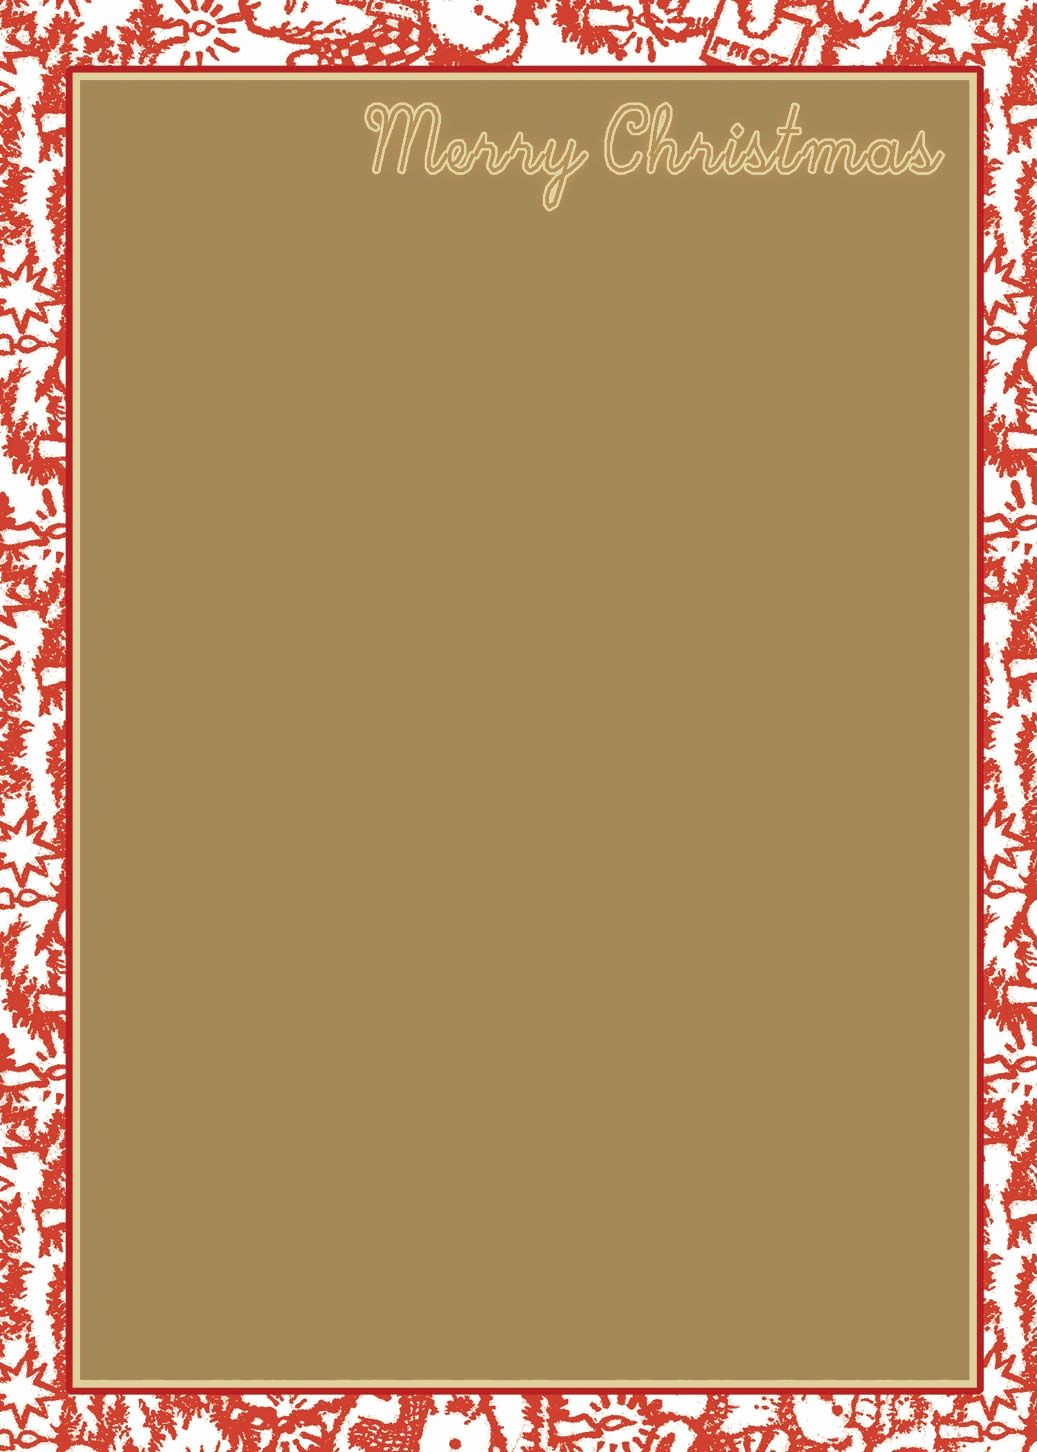 Holiday Paper Templates Free Download Beautiful Holiday Stationery Templates Free Download Free Printable